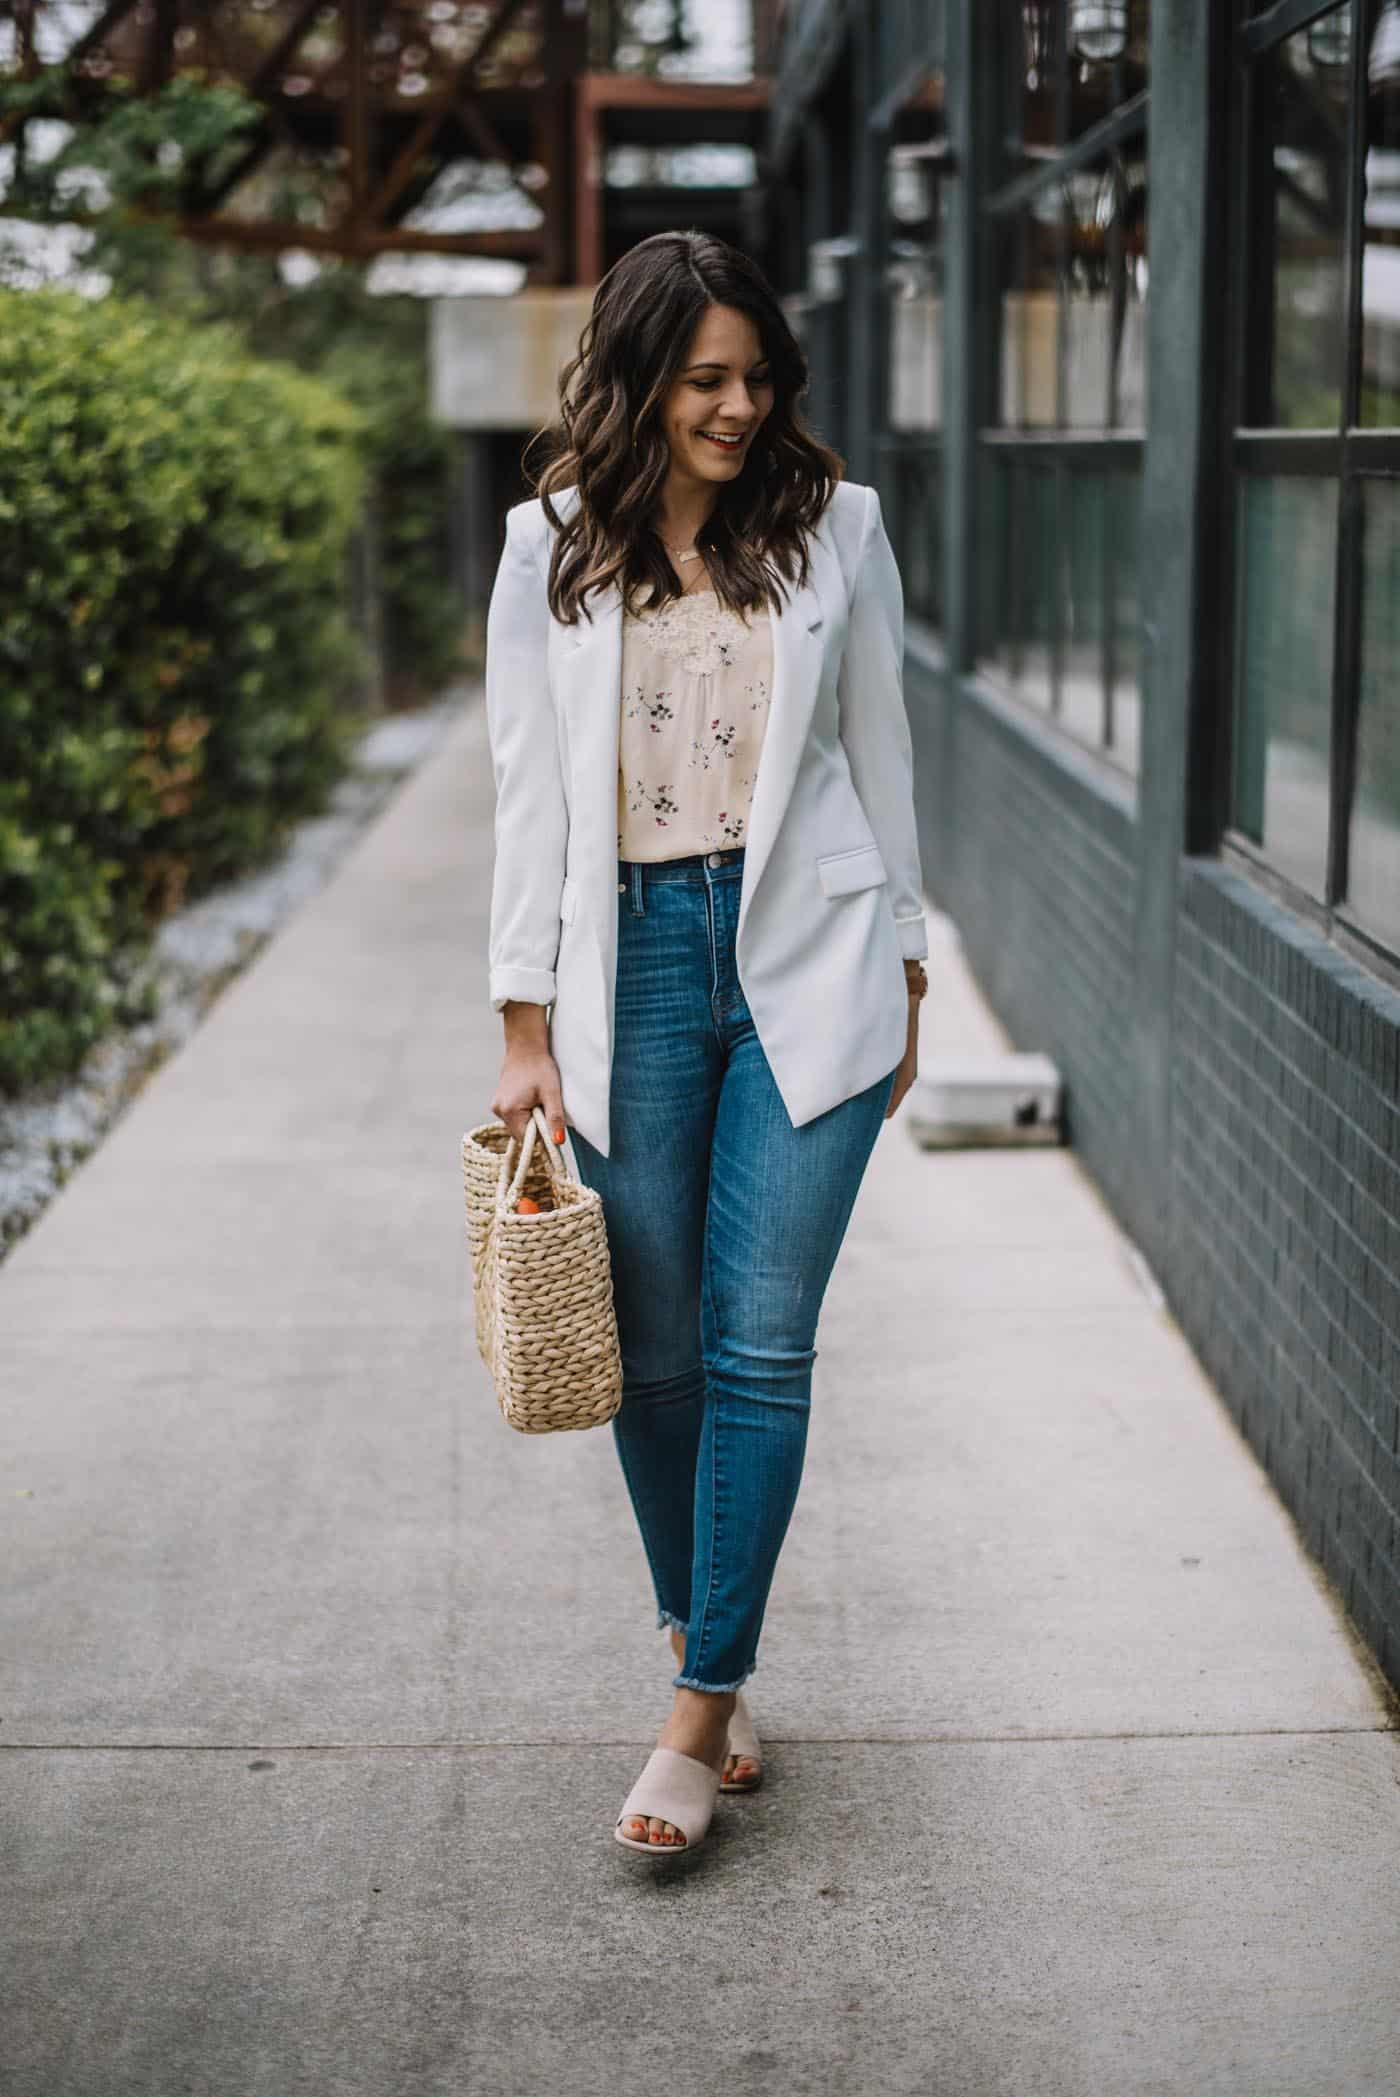 White blazer, spring outfit ideas, how to find a great blazer - My Style Vita